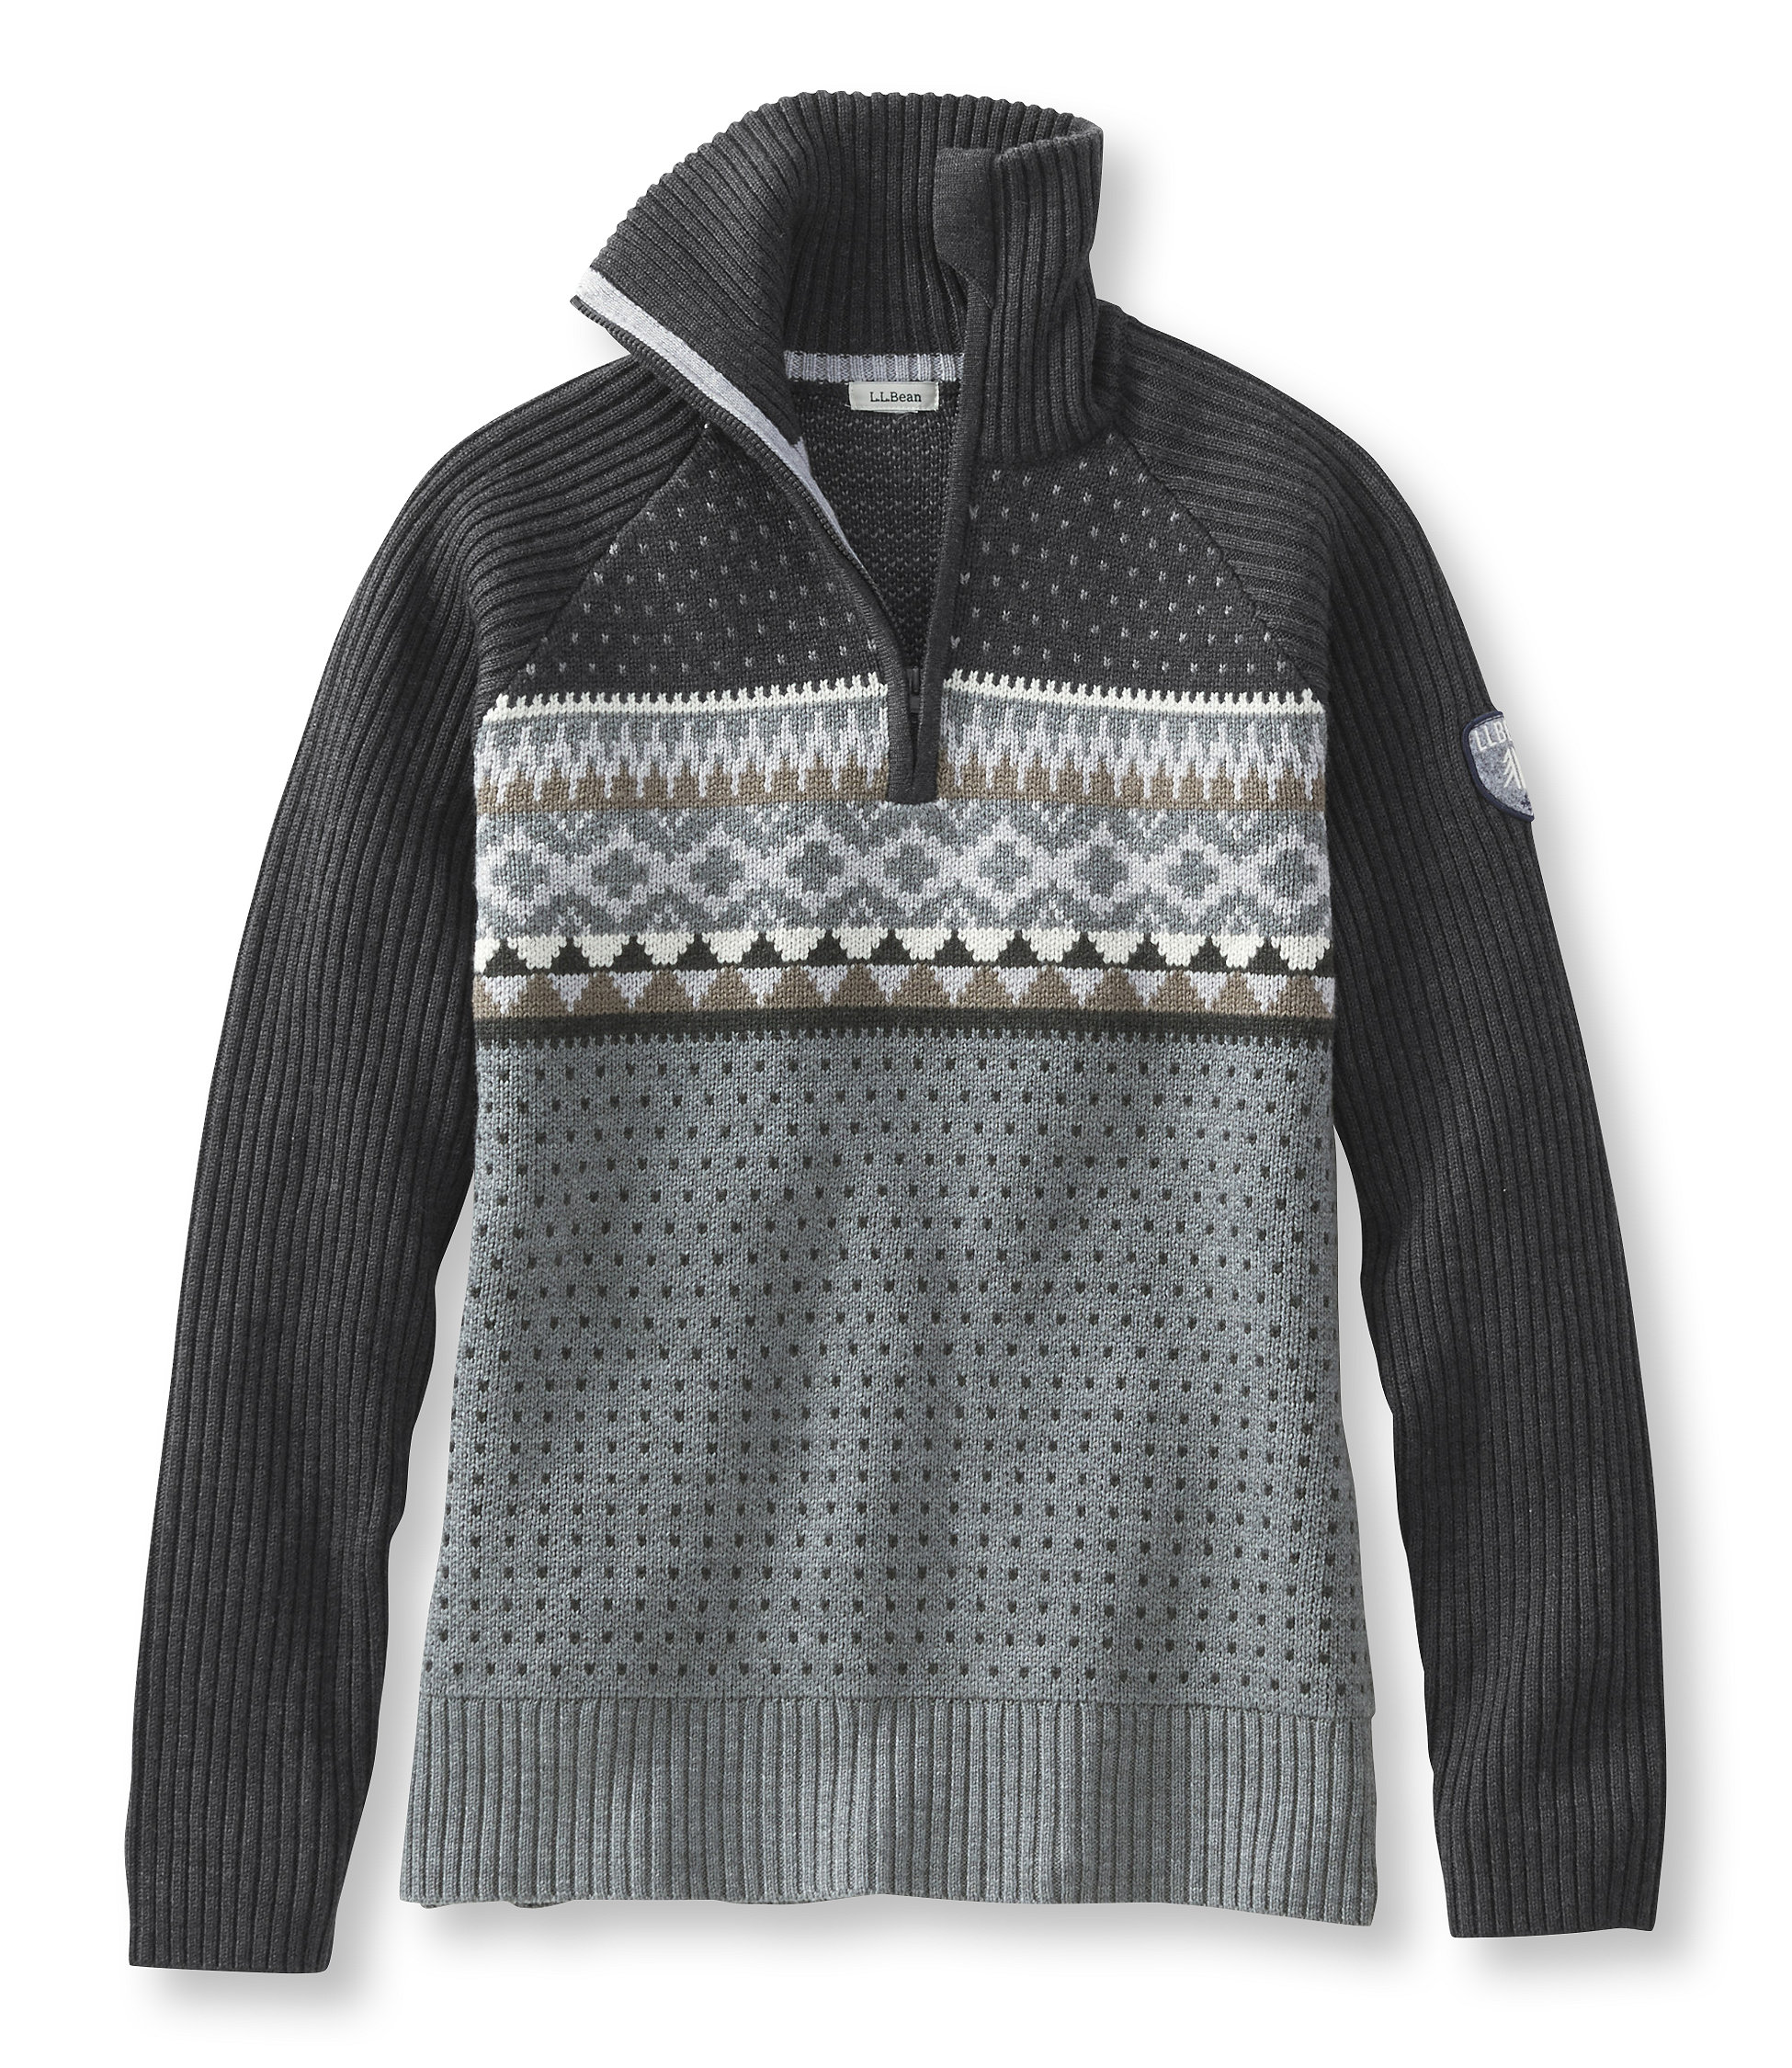 L.L.Bean Snowcap Ski Sweater